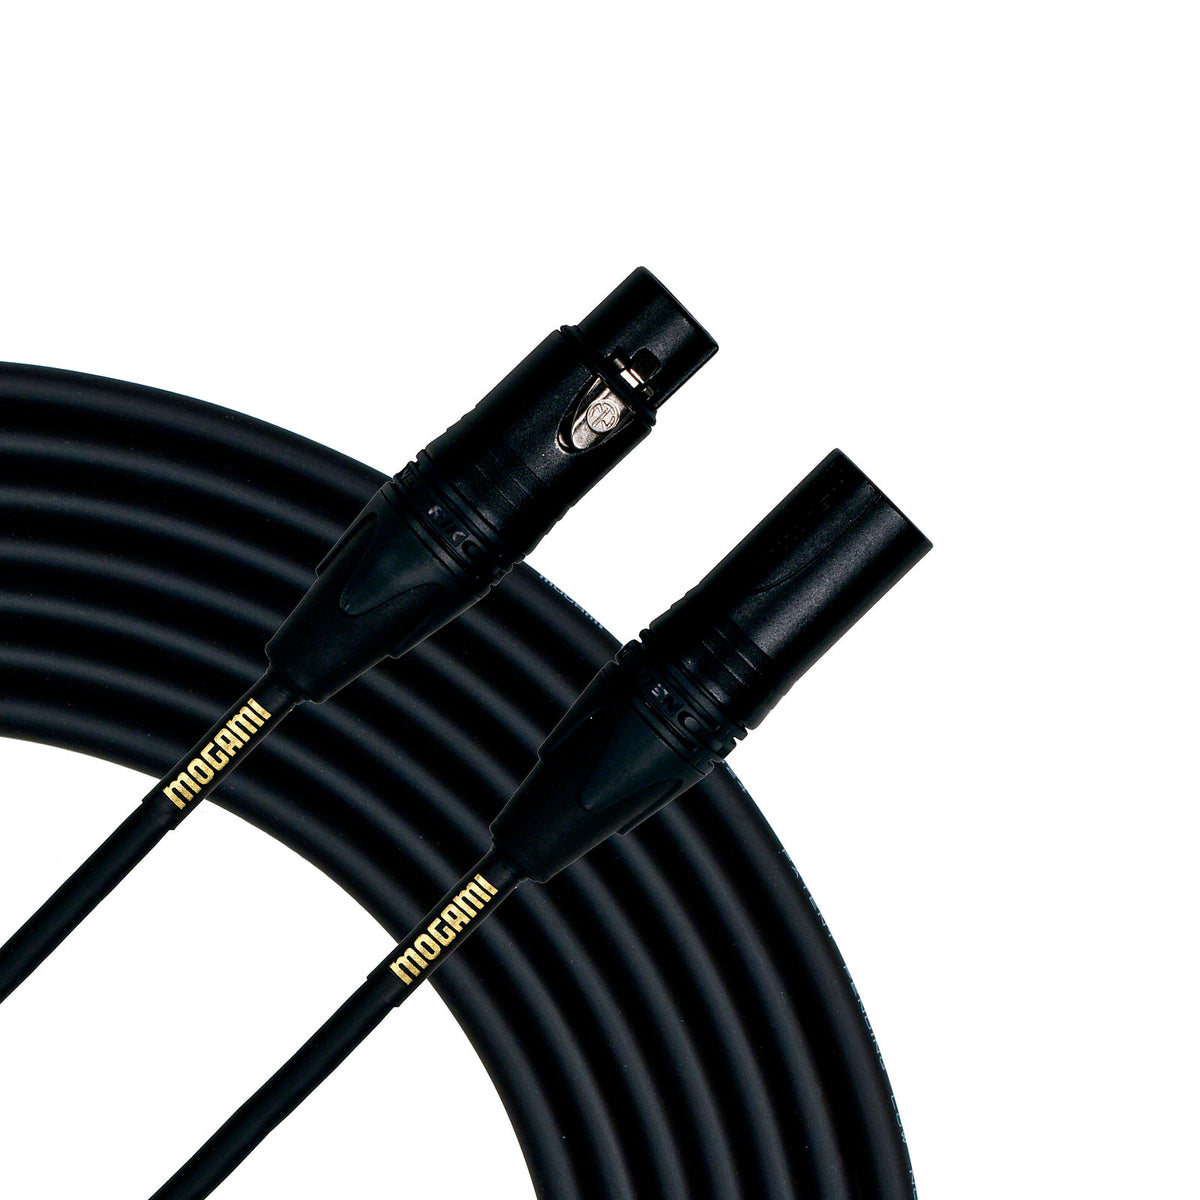 Mogami Gold Studio Microphone Cable, 50 Foot